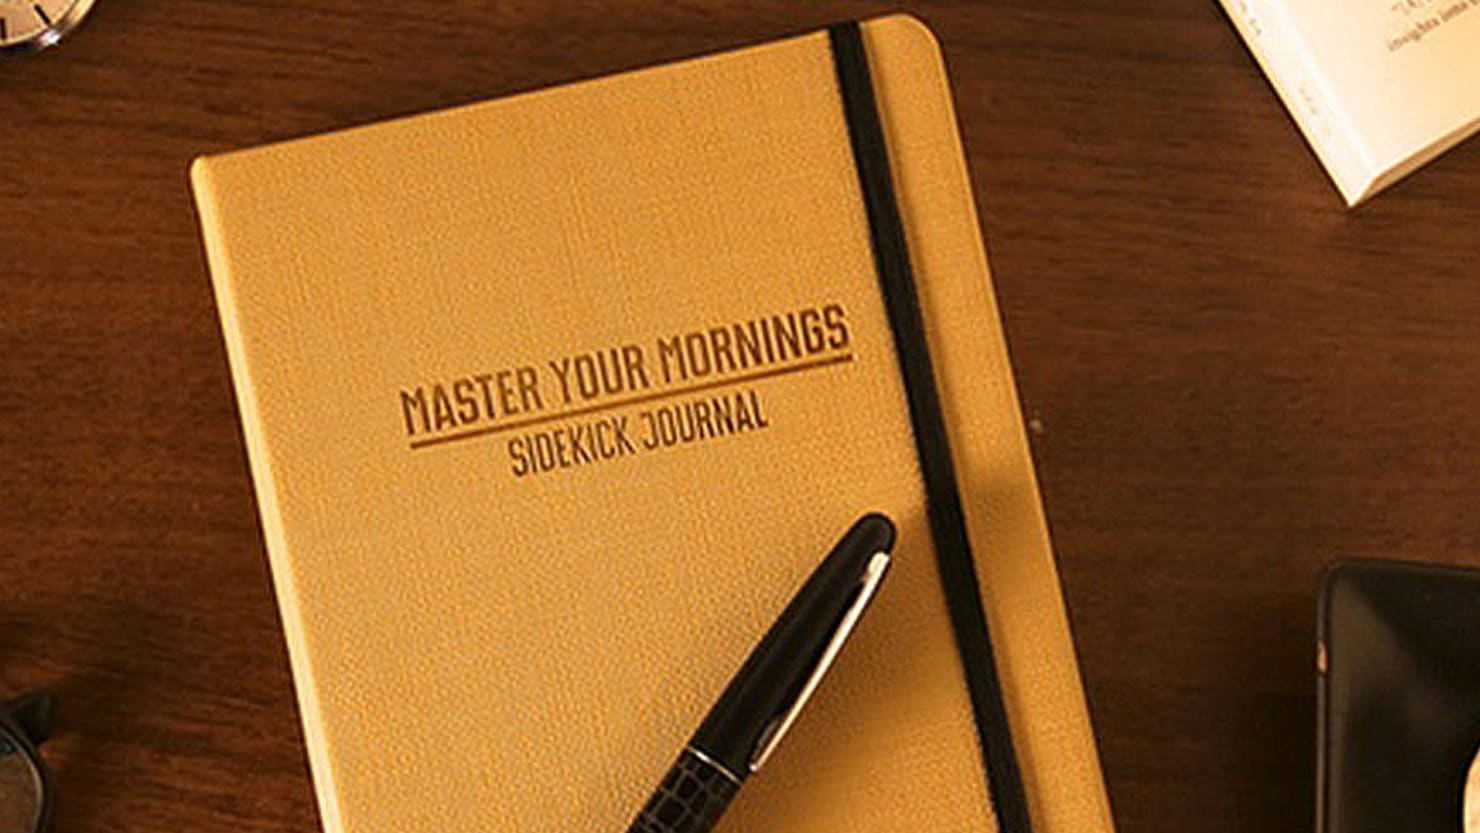 Discussion on this topic: How to Keep a Cyber Journal, how-to-keep-a-cyber-journal/